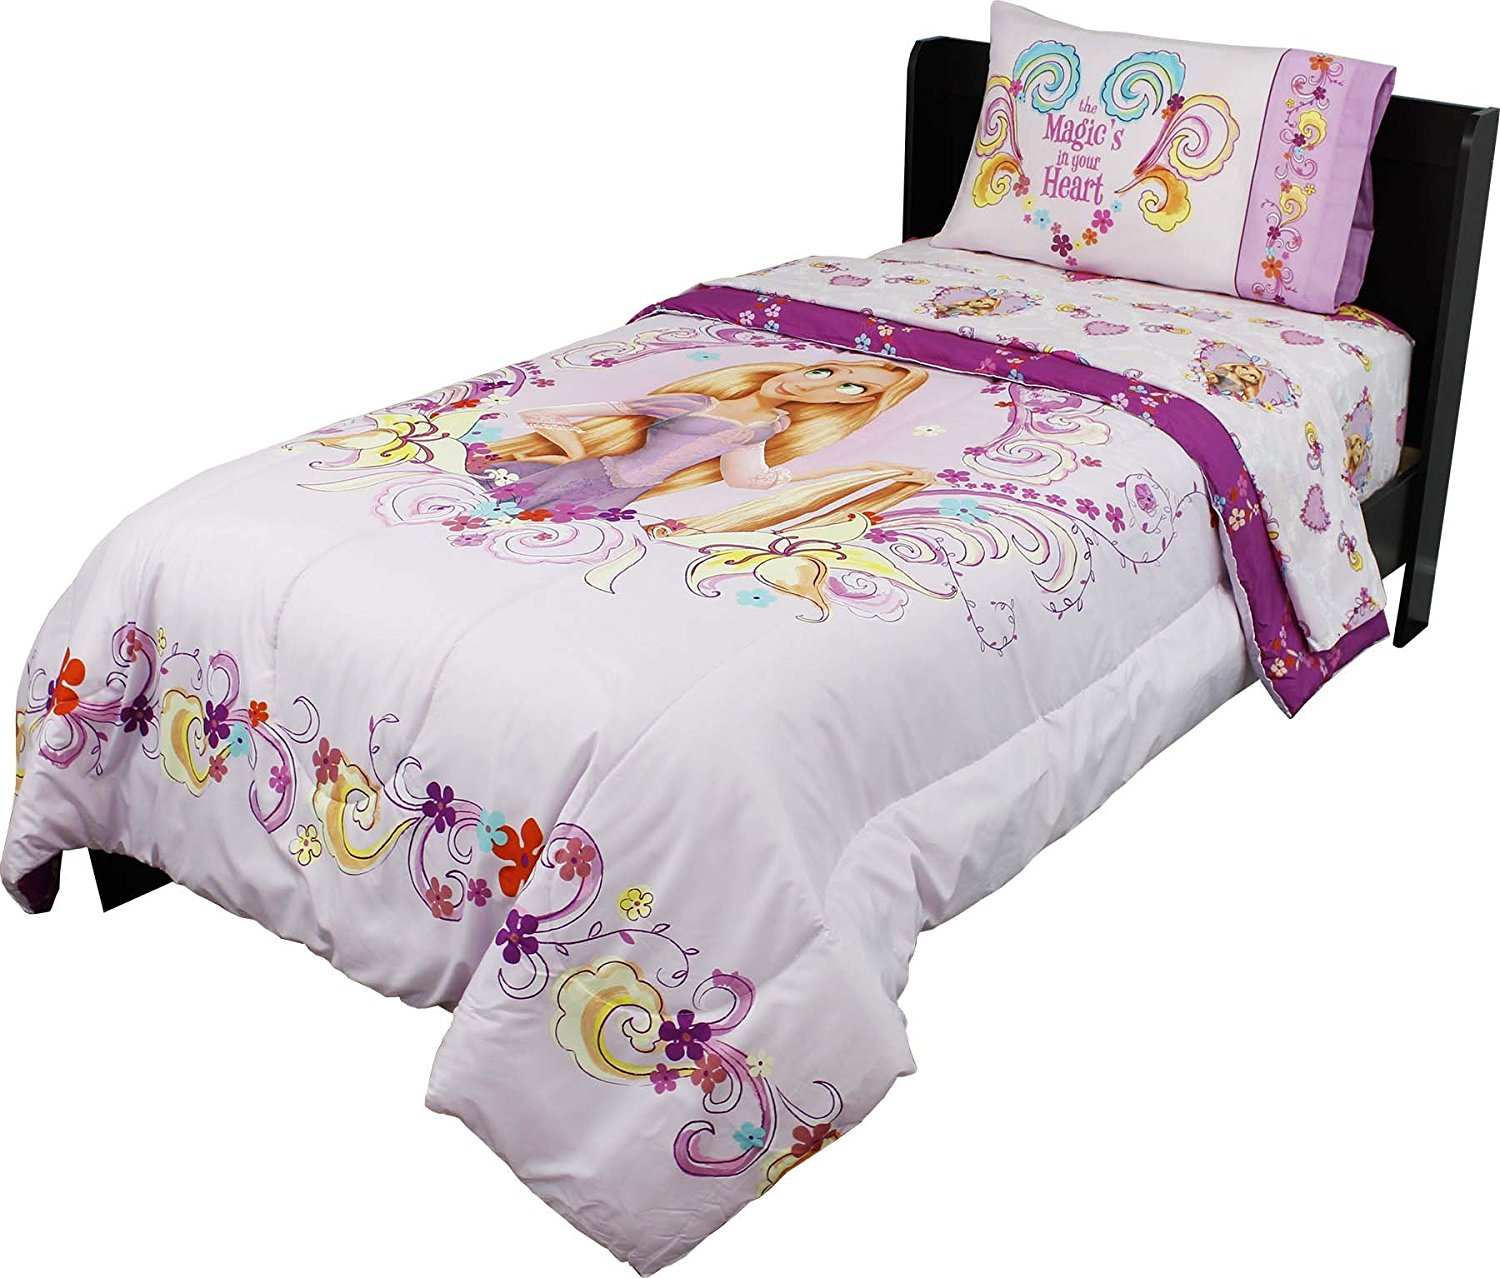 4pc Disney Tangled Twin Bedding Set Rapunzel Magic is in Your Heart Comforter and Sheet Set